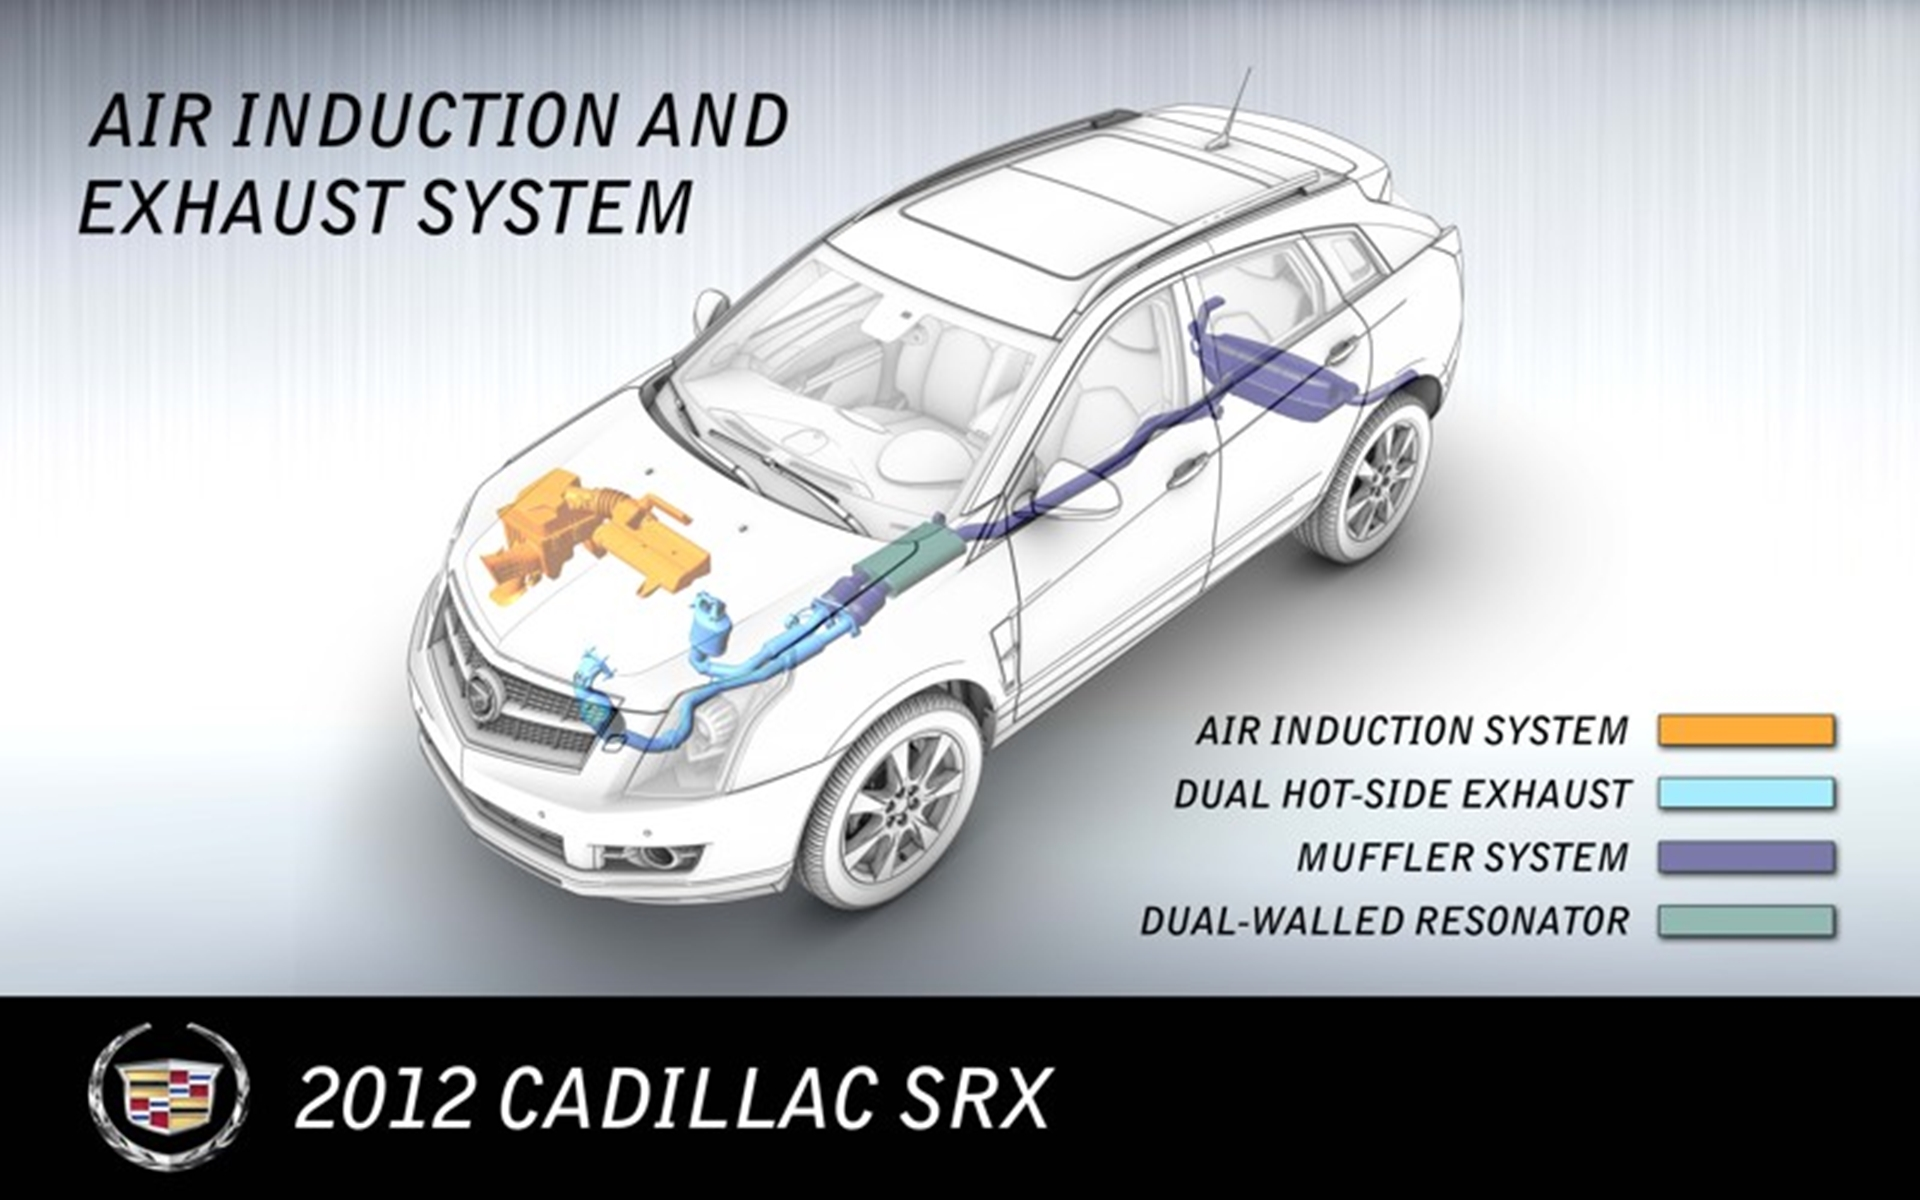 SRX_air_induction_exhaust_system